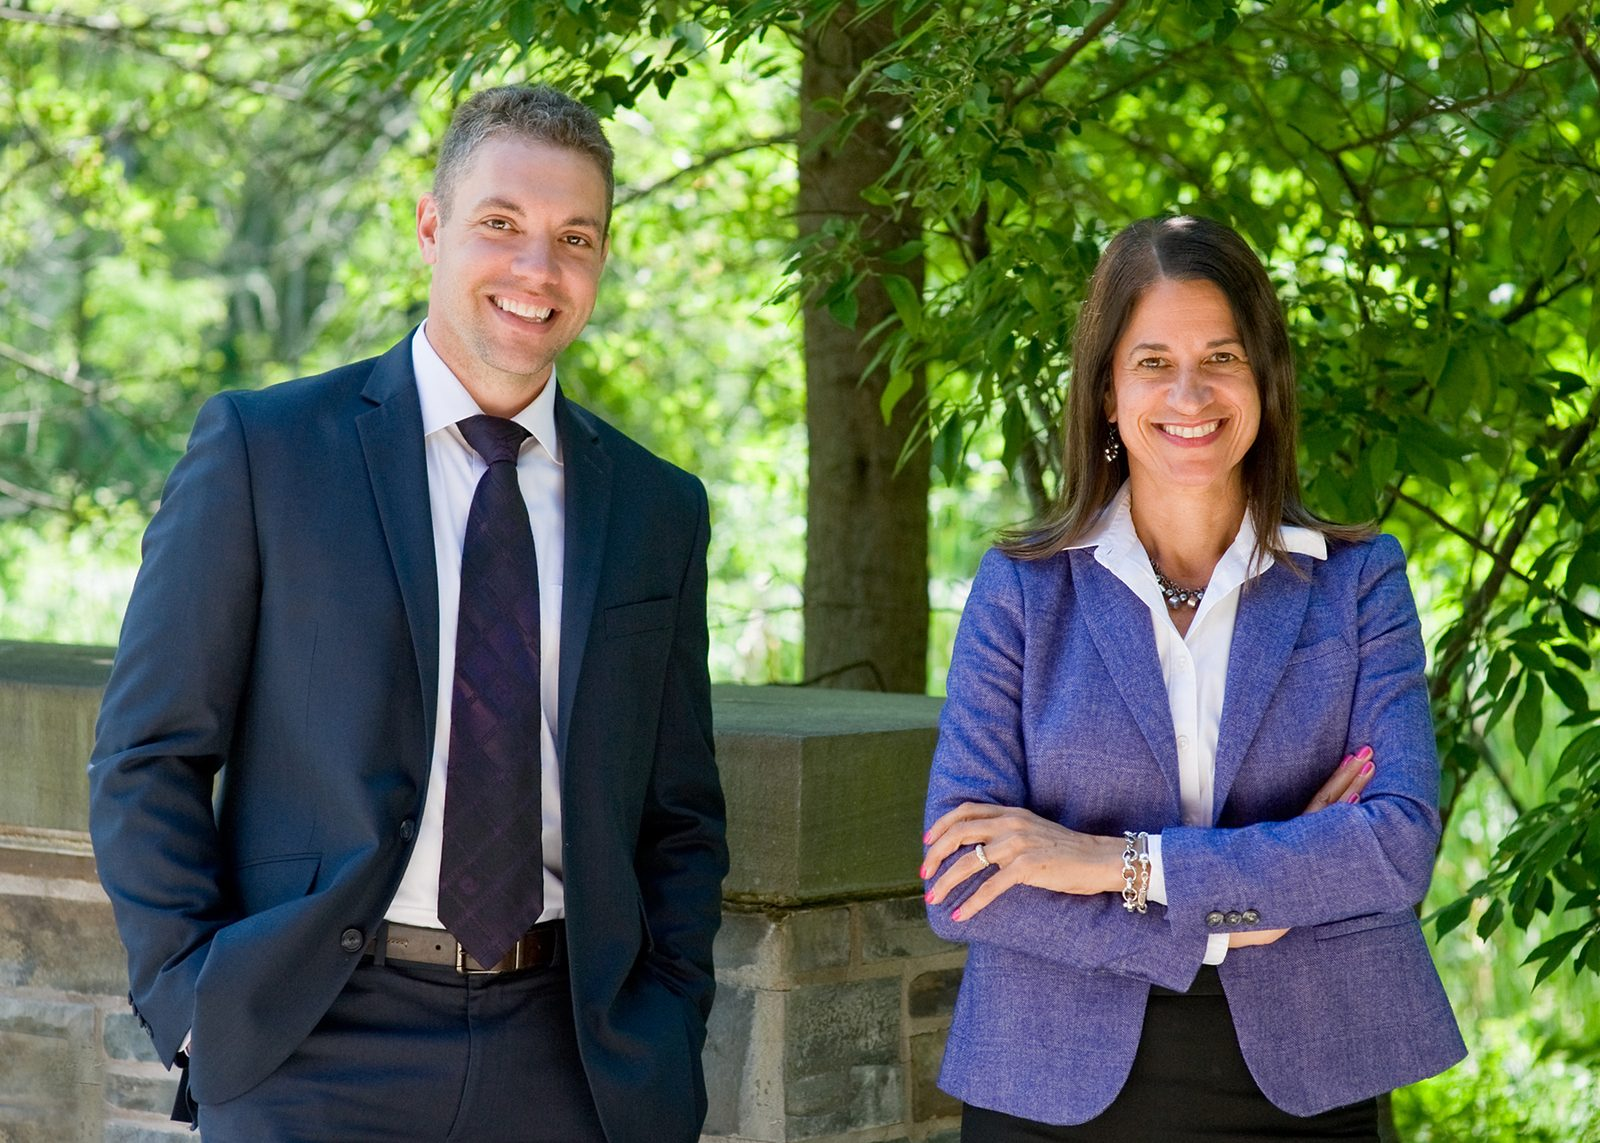 The Lenroc Team | Ithaca, NY | Morgan Stanley Wealth Management